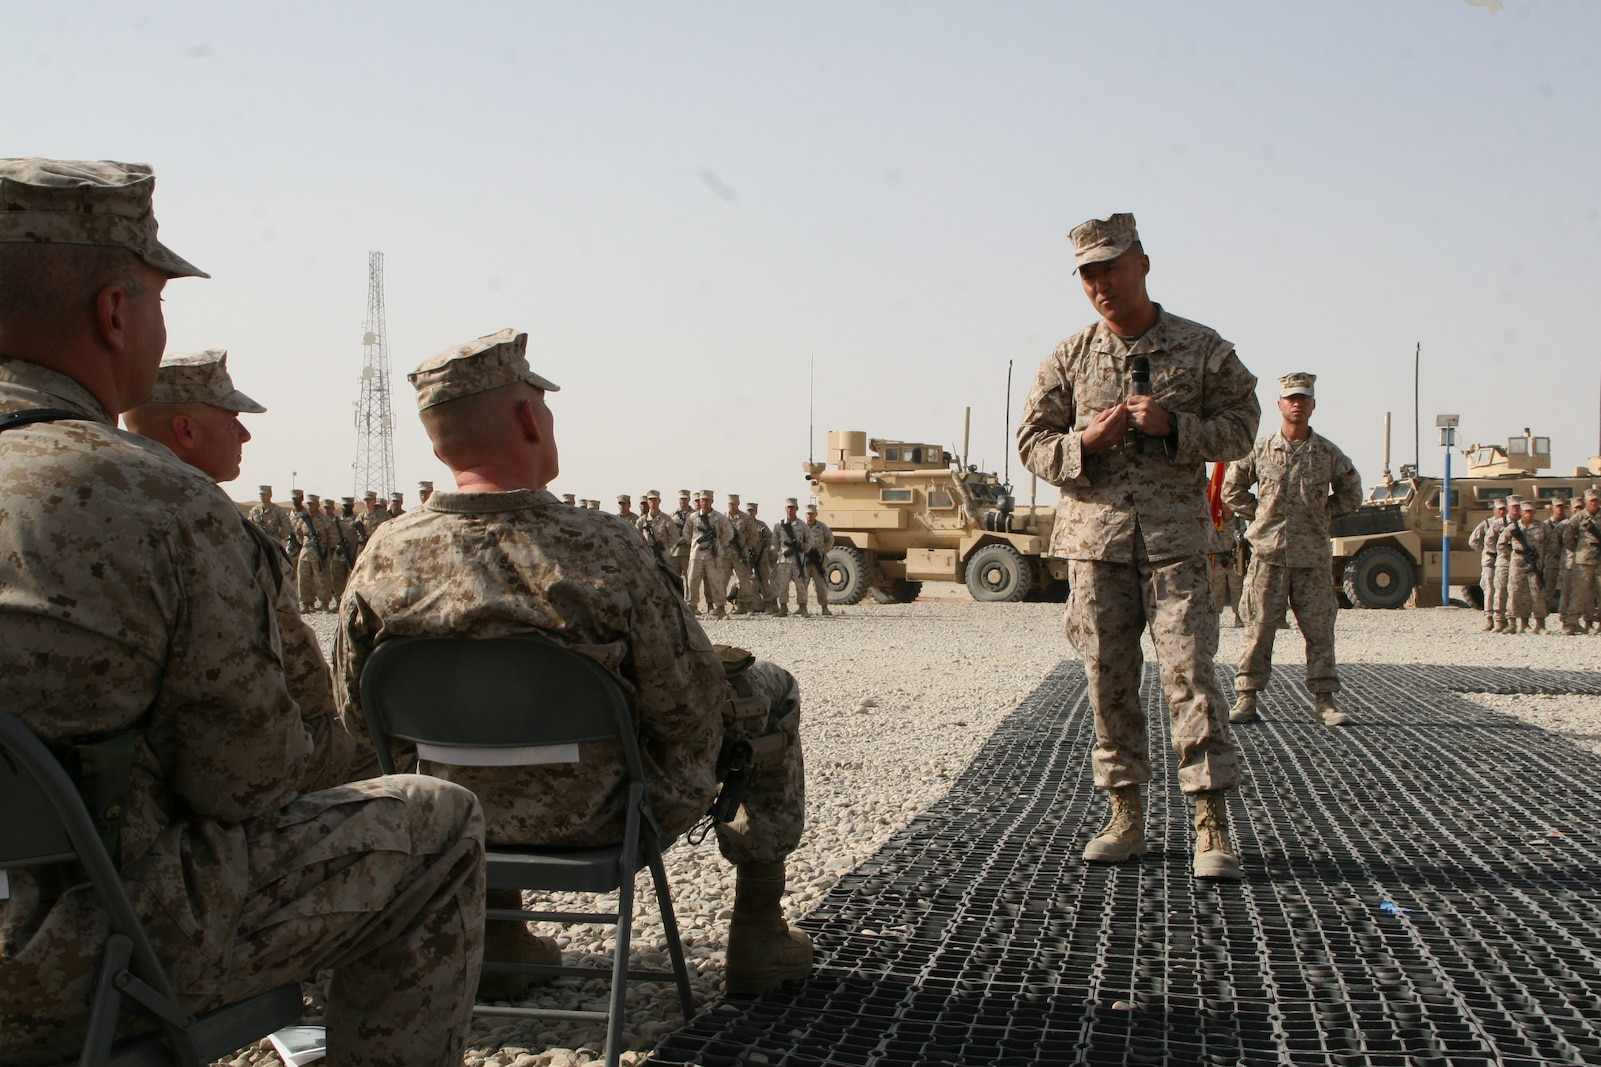 Lt. Col. Joon H. Um, right, commanding officer, Combat Logistics Battalion 1, addresses guests during a transfer of authority ceremony held aboard Camp Leatherneck, Helmand province, Afghanistan, Aug. 1, 2014. Combat Logistics Battalion 1 replaced CLB-7 as the last unit to aid Regional Command (Southwest) with tactical-level logistical support and will close out another chapter in Marine Corps history as the last unit to serve as the logistics combat element for RC(SW).